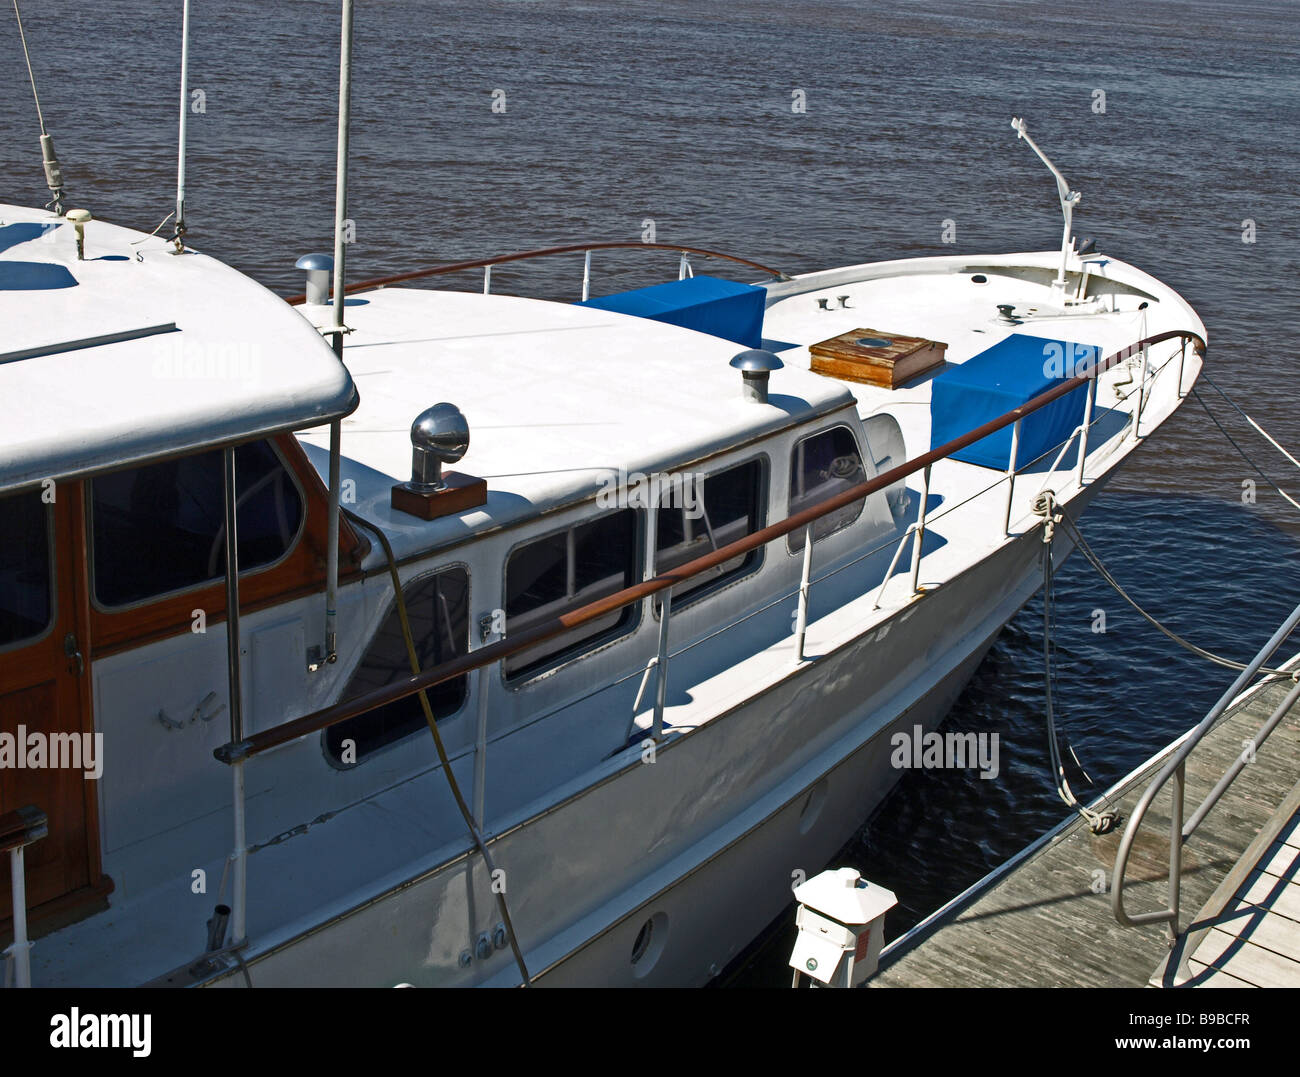 power boat vessel yacht at dock in river with panelled cabin and white decks - Stock Image